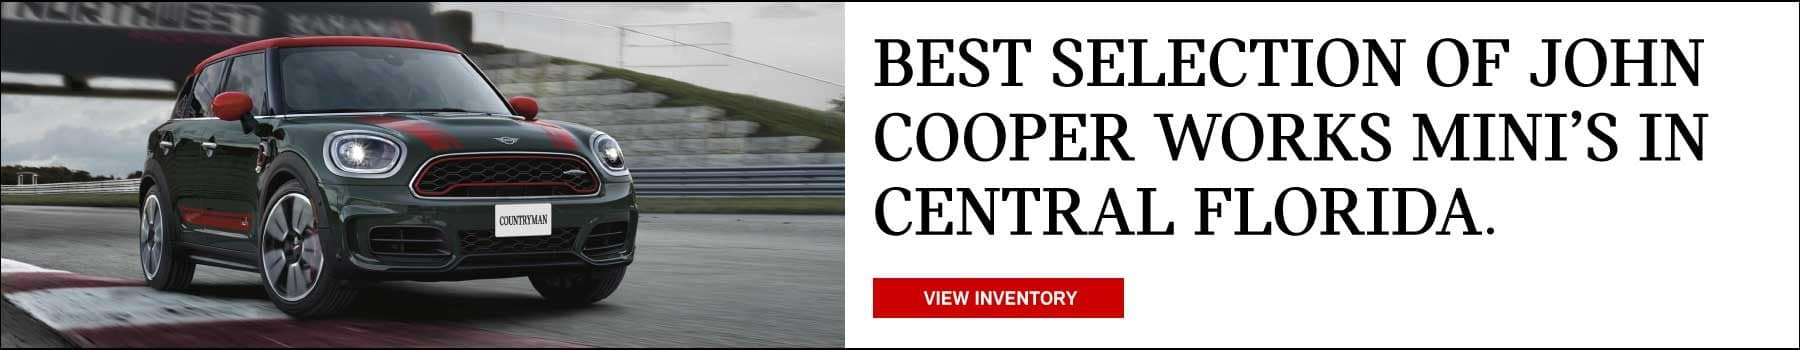 Best selection of John Cooper works MINI's in Central Florida. View Inventory button. MINI John Cooper works Clubman driving on race track.